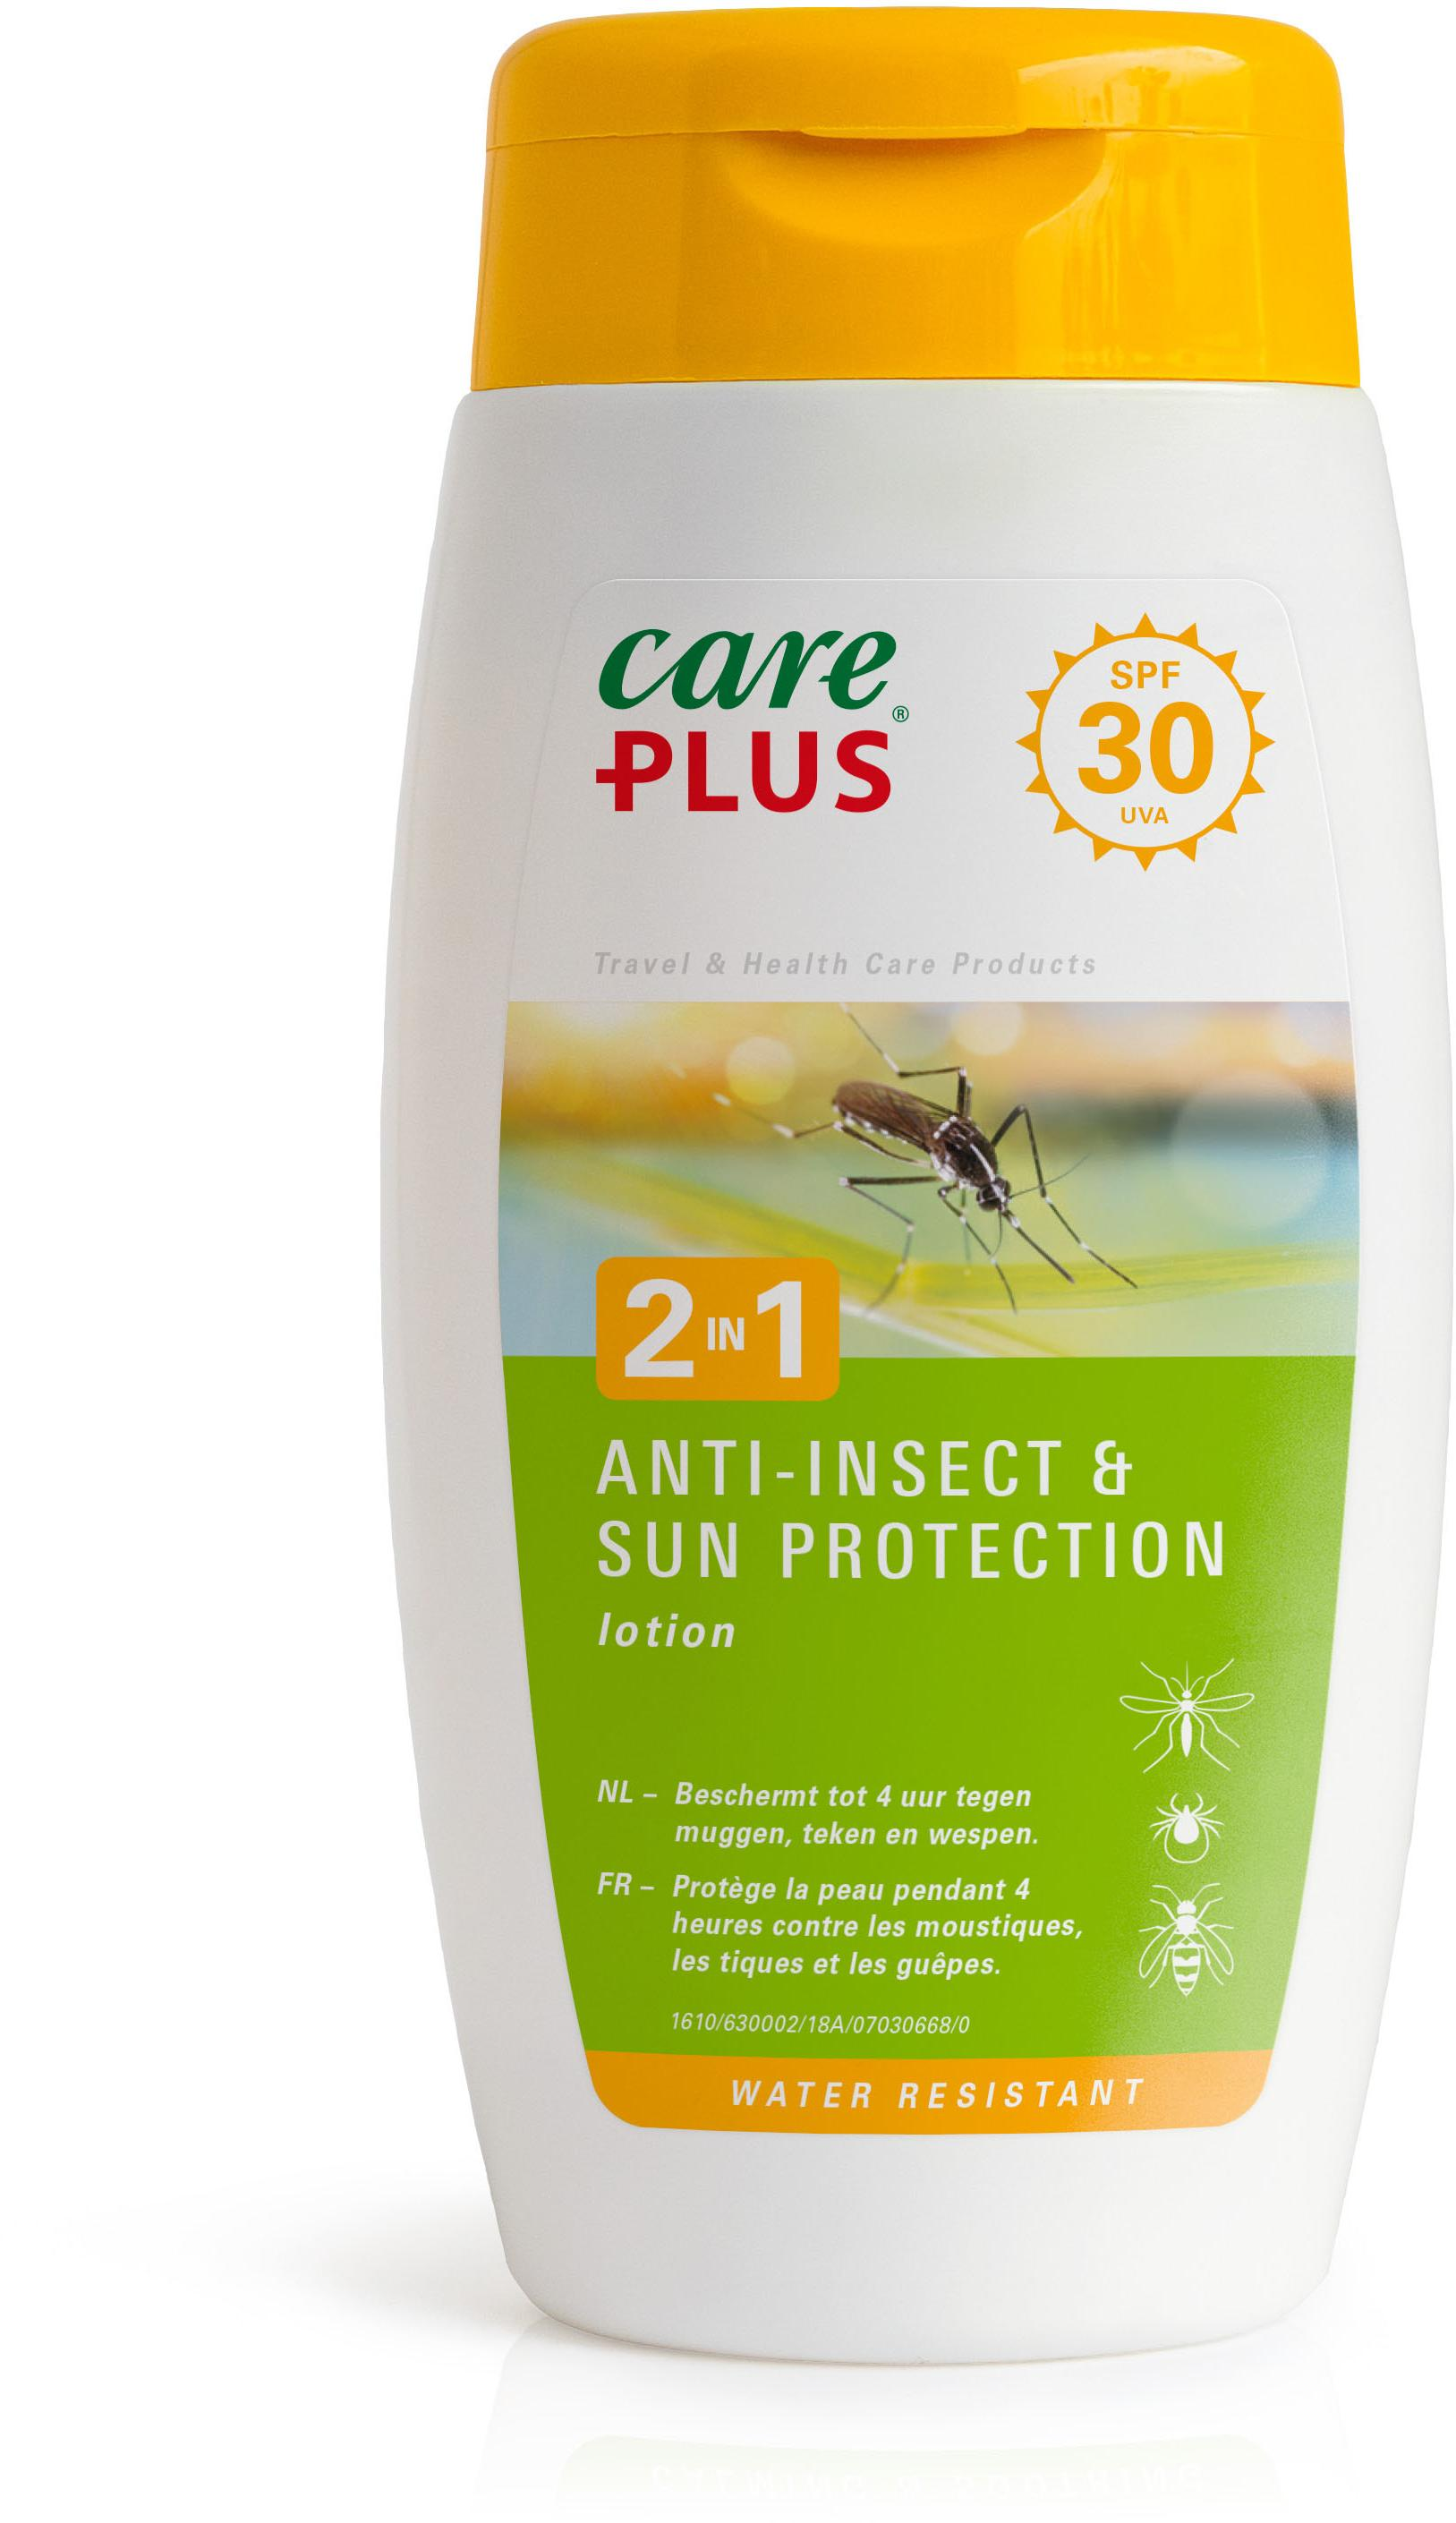 2in1 Anti-Insect & Sun Protection Lotion SPF30, 150ml